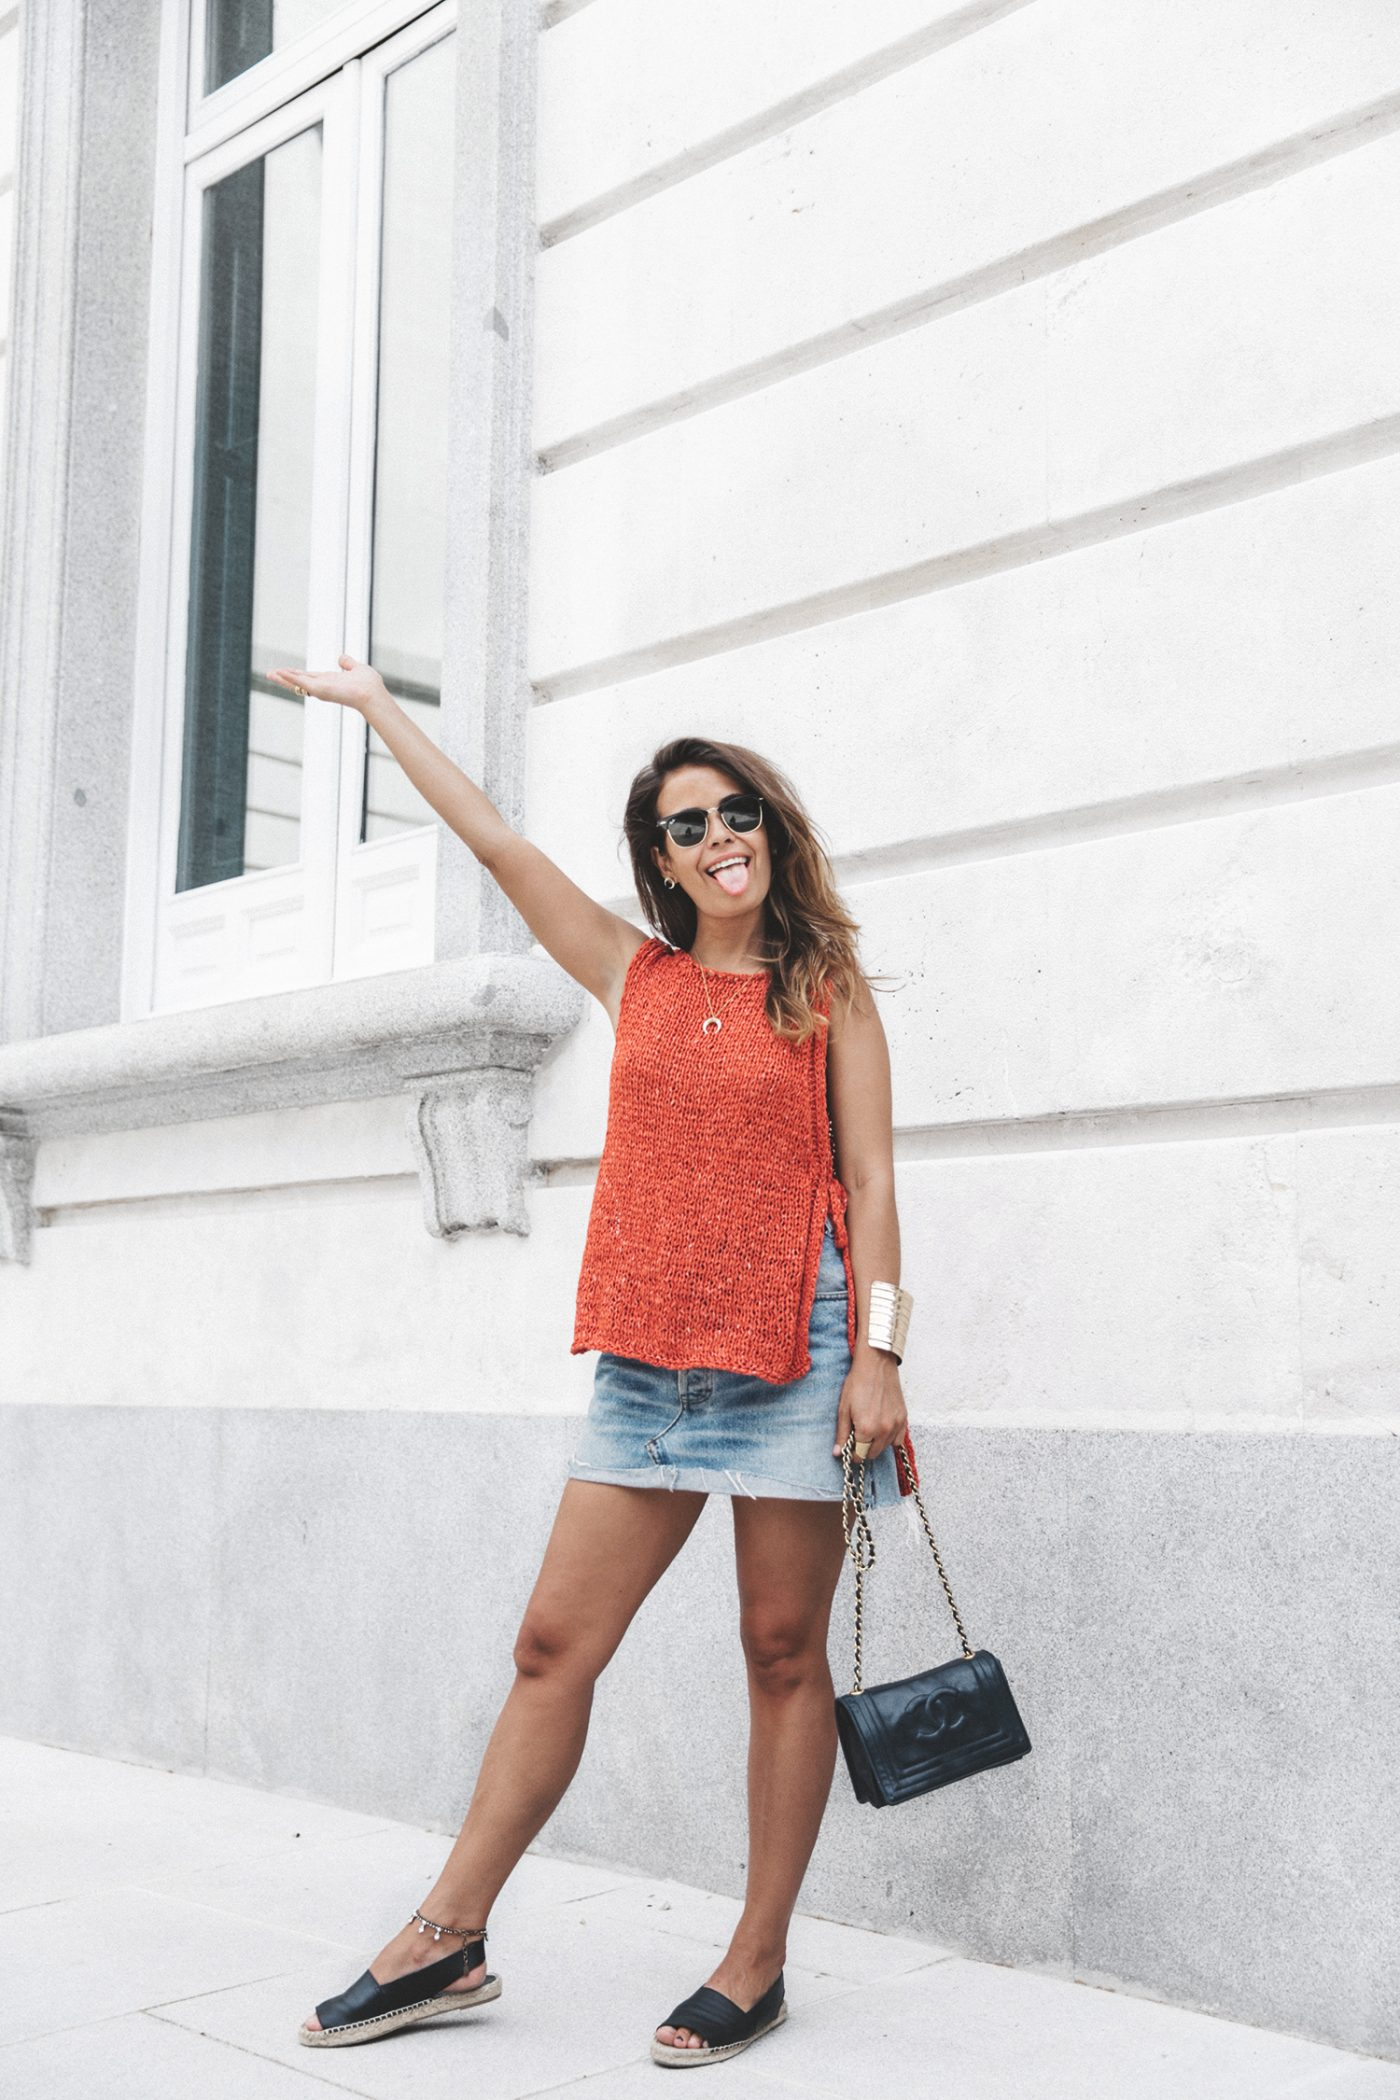 Summery_knit-Levis_Vintage_Skirt-Zalando_Espadrilles-Black_Sandals-Collage_Vintage_Horn_Necklace-Outfit-Street_Style-32